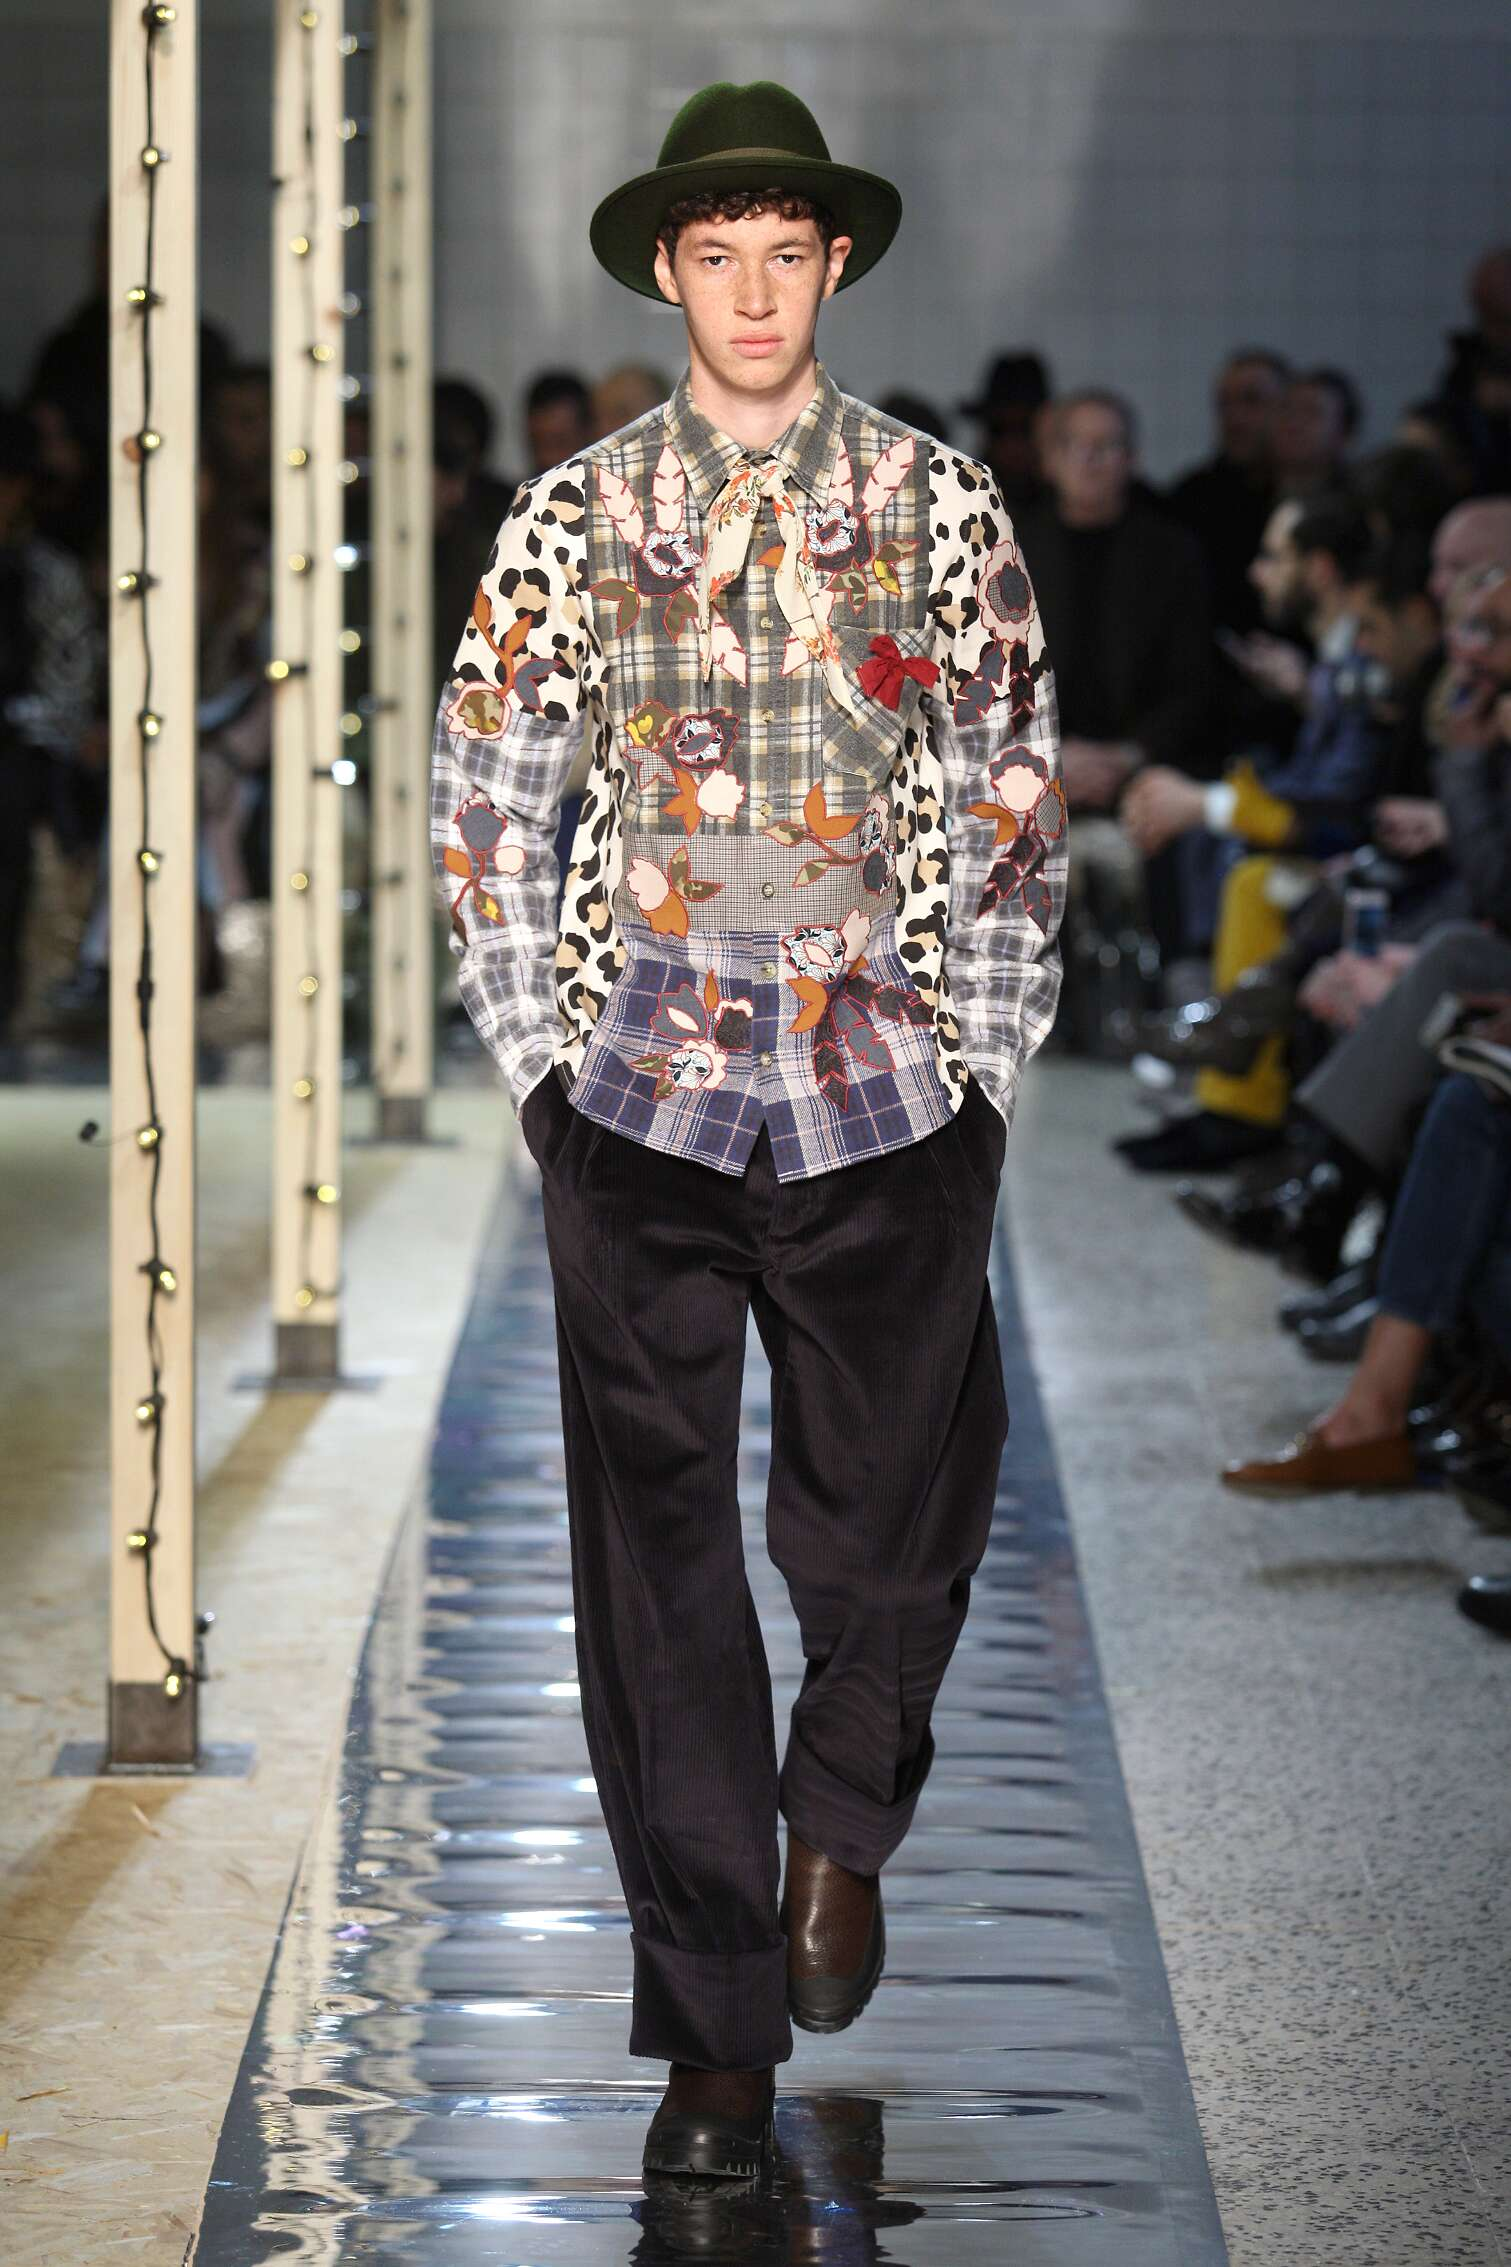 Catwalk Antonio Marras Man Fashion Show Winter 2016